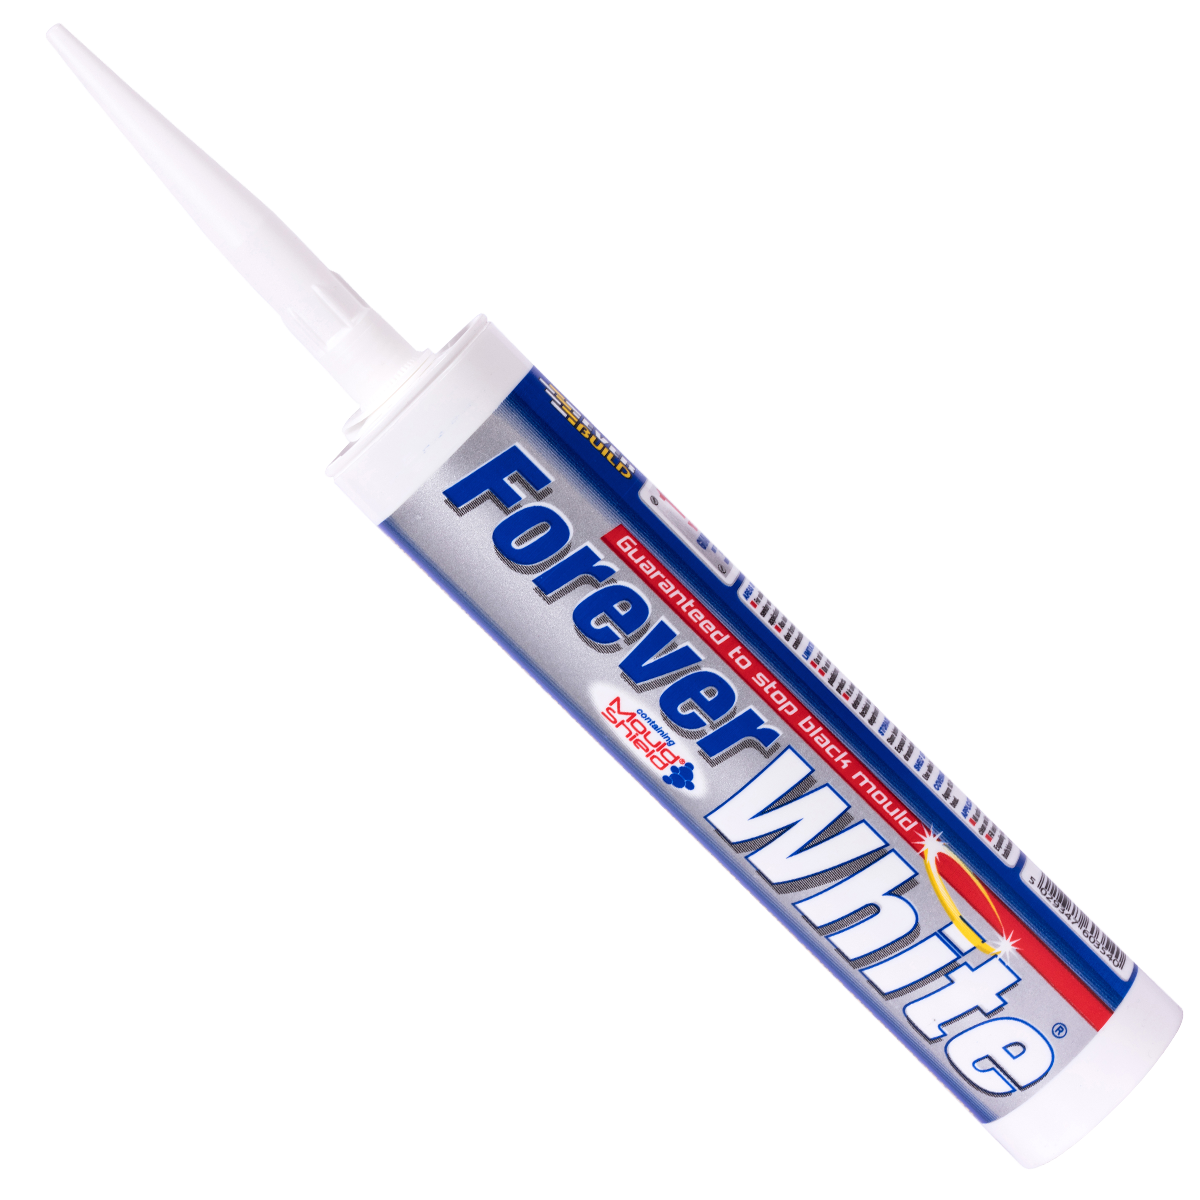 Whether you're fixing a leak or preventing bathroom mould, we have the right silicone sealant in stock for you.